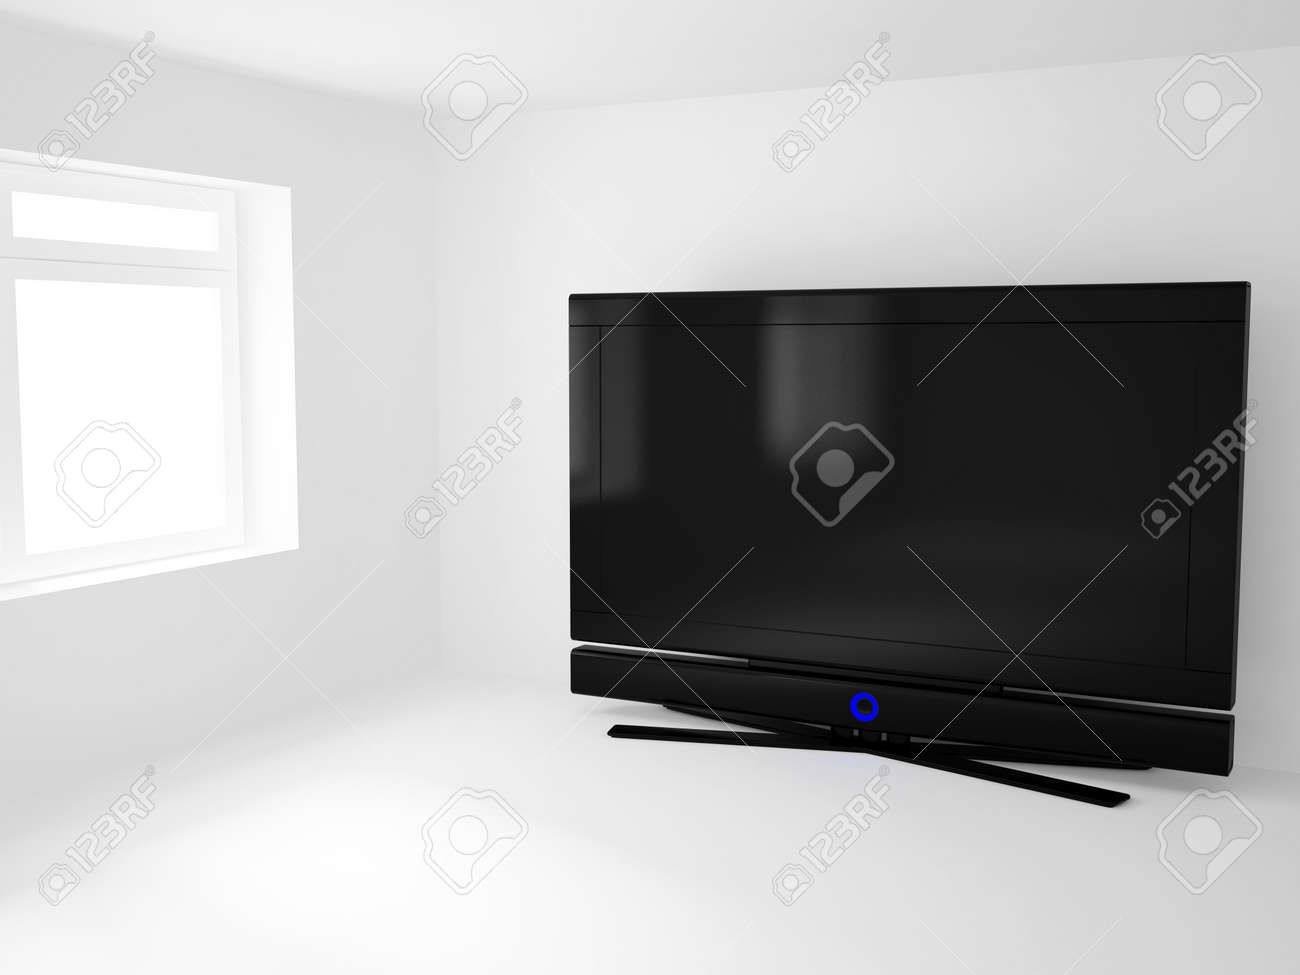 High resolution image 3d room with a  tv. 3d illustration. Stock Photo - 3067629